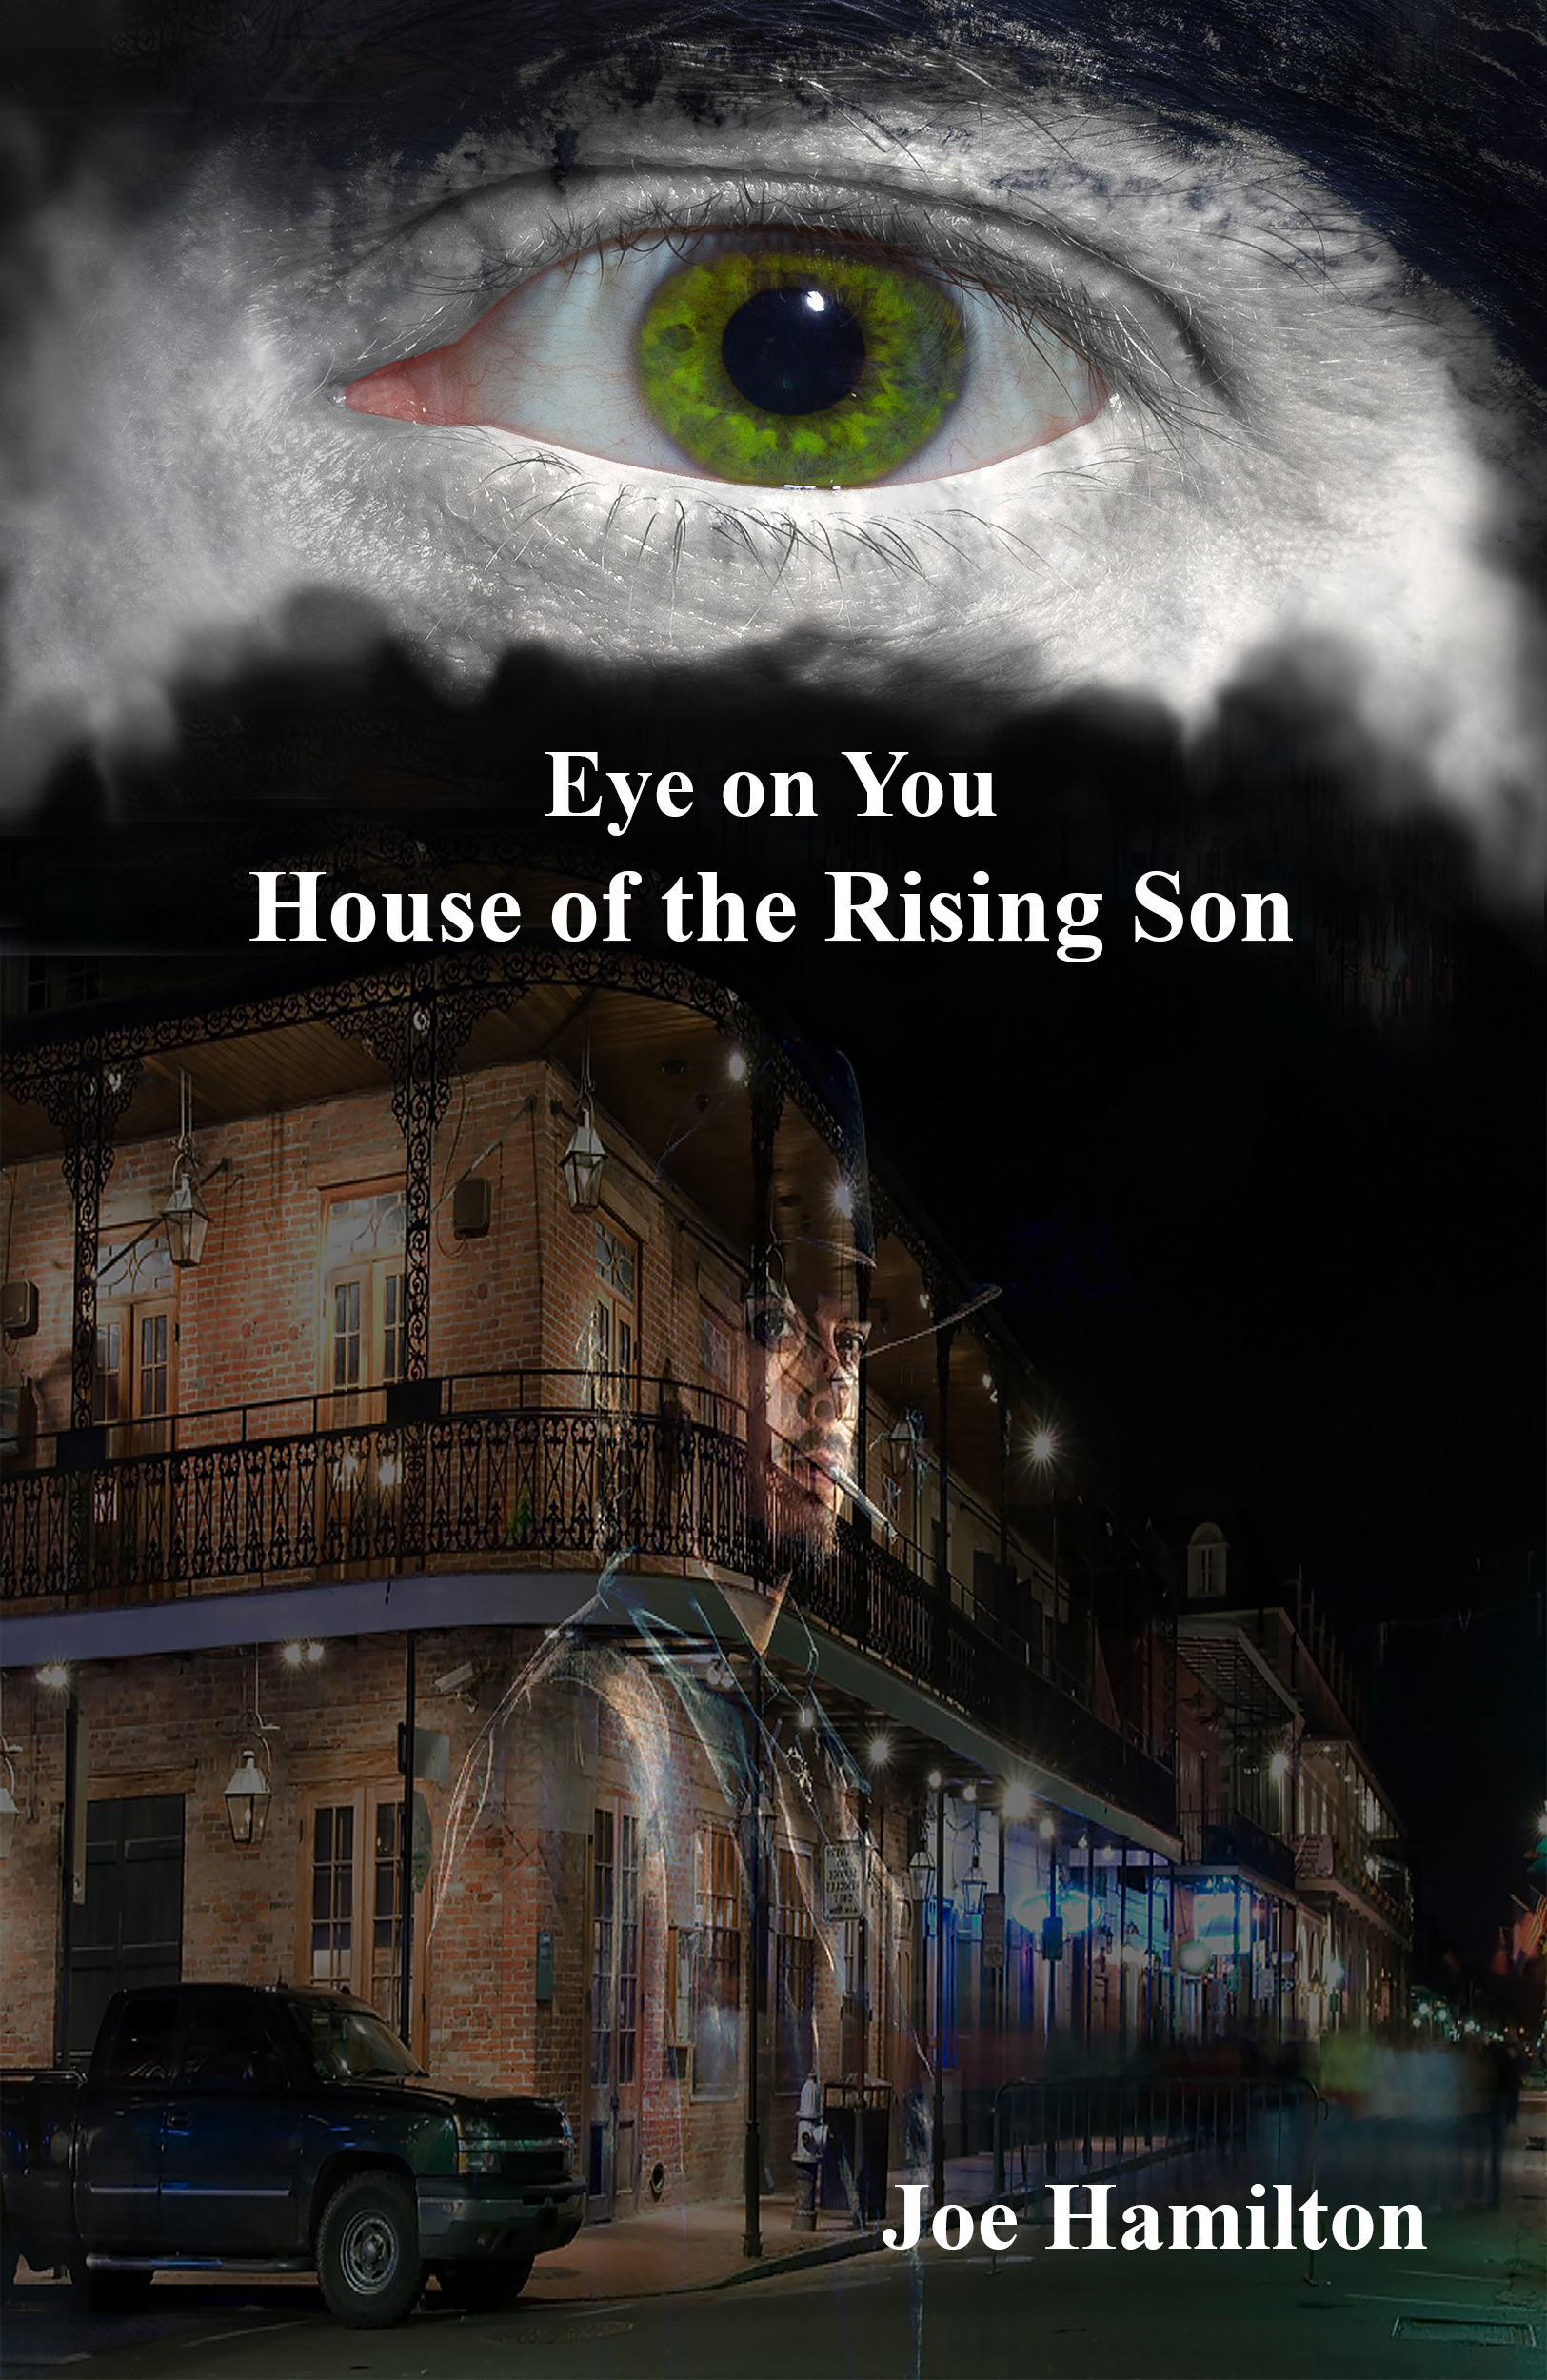 Eye on You - House of the Rising Son